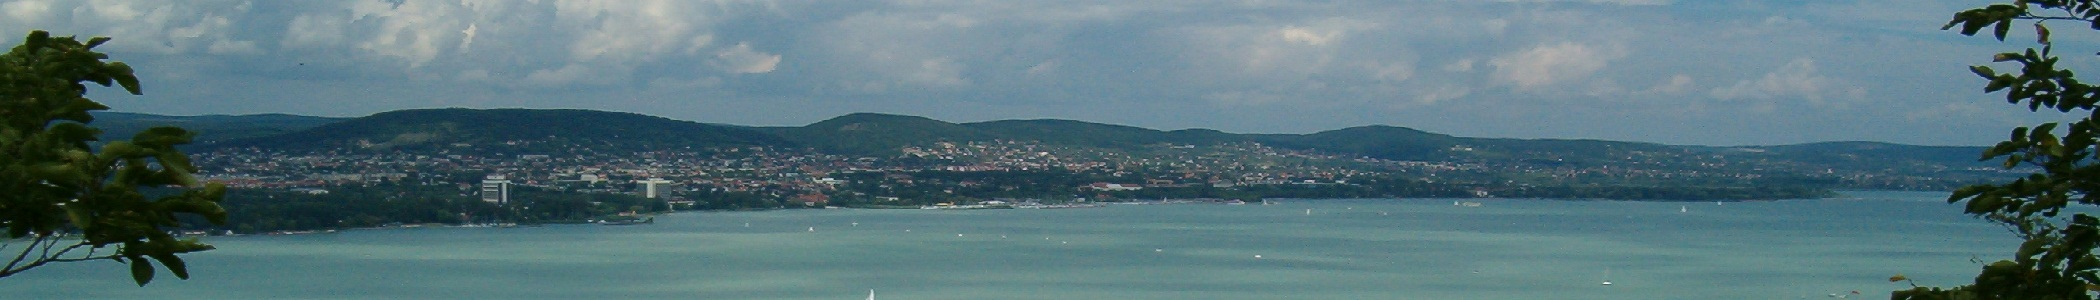 Balatonfüred Travel Guide At Wikivoyage